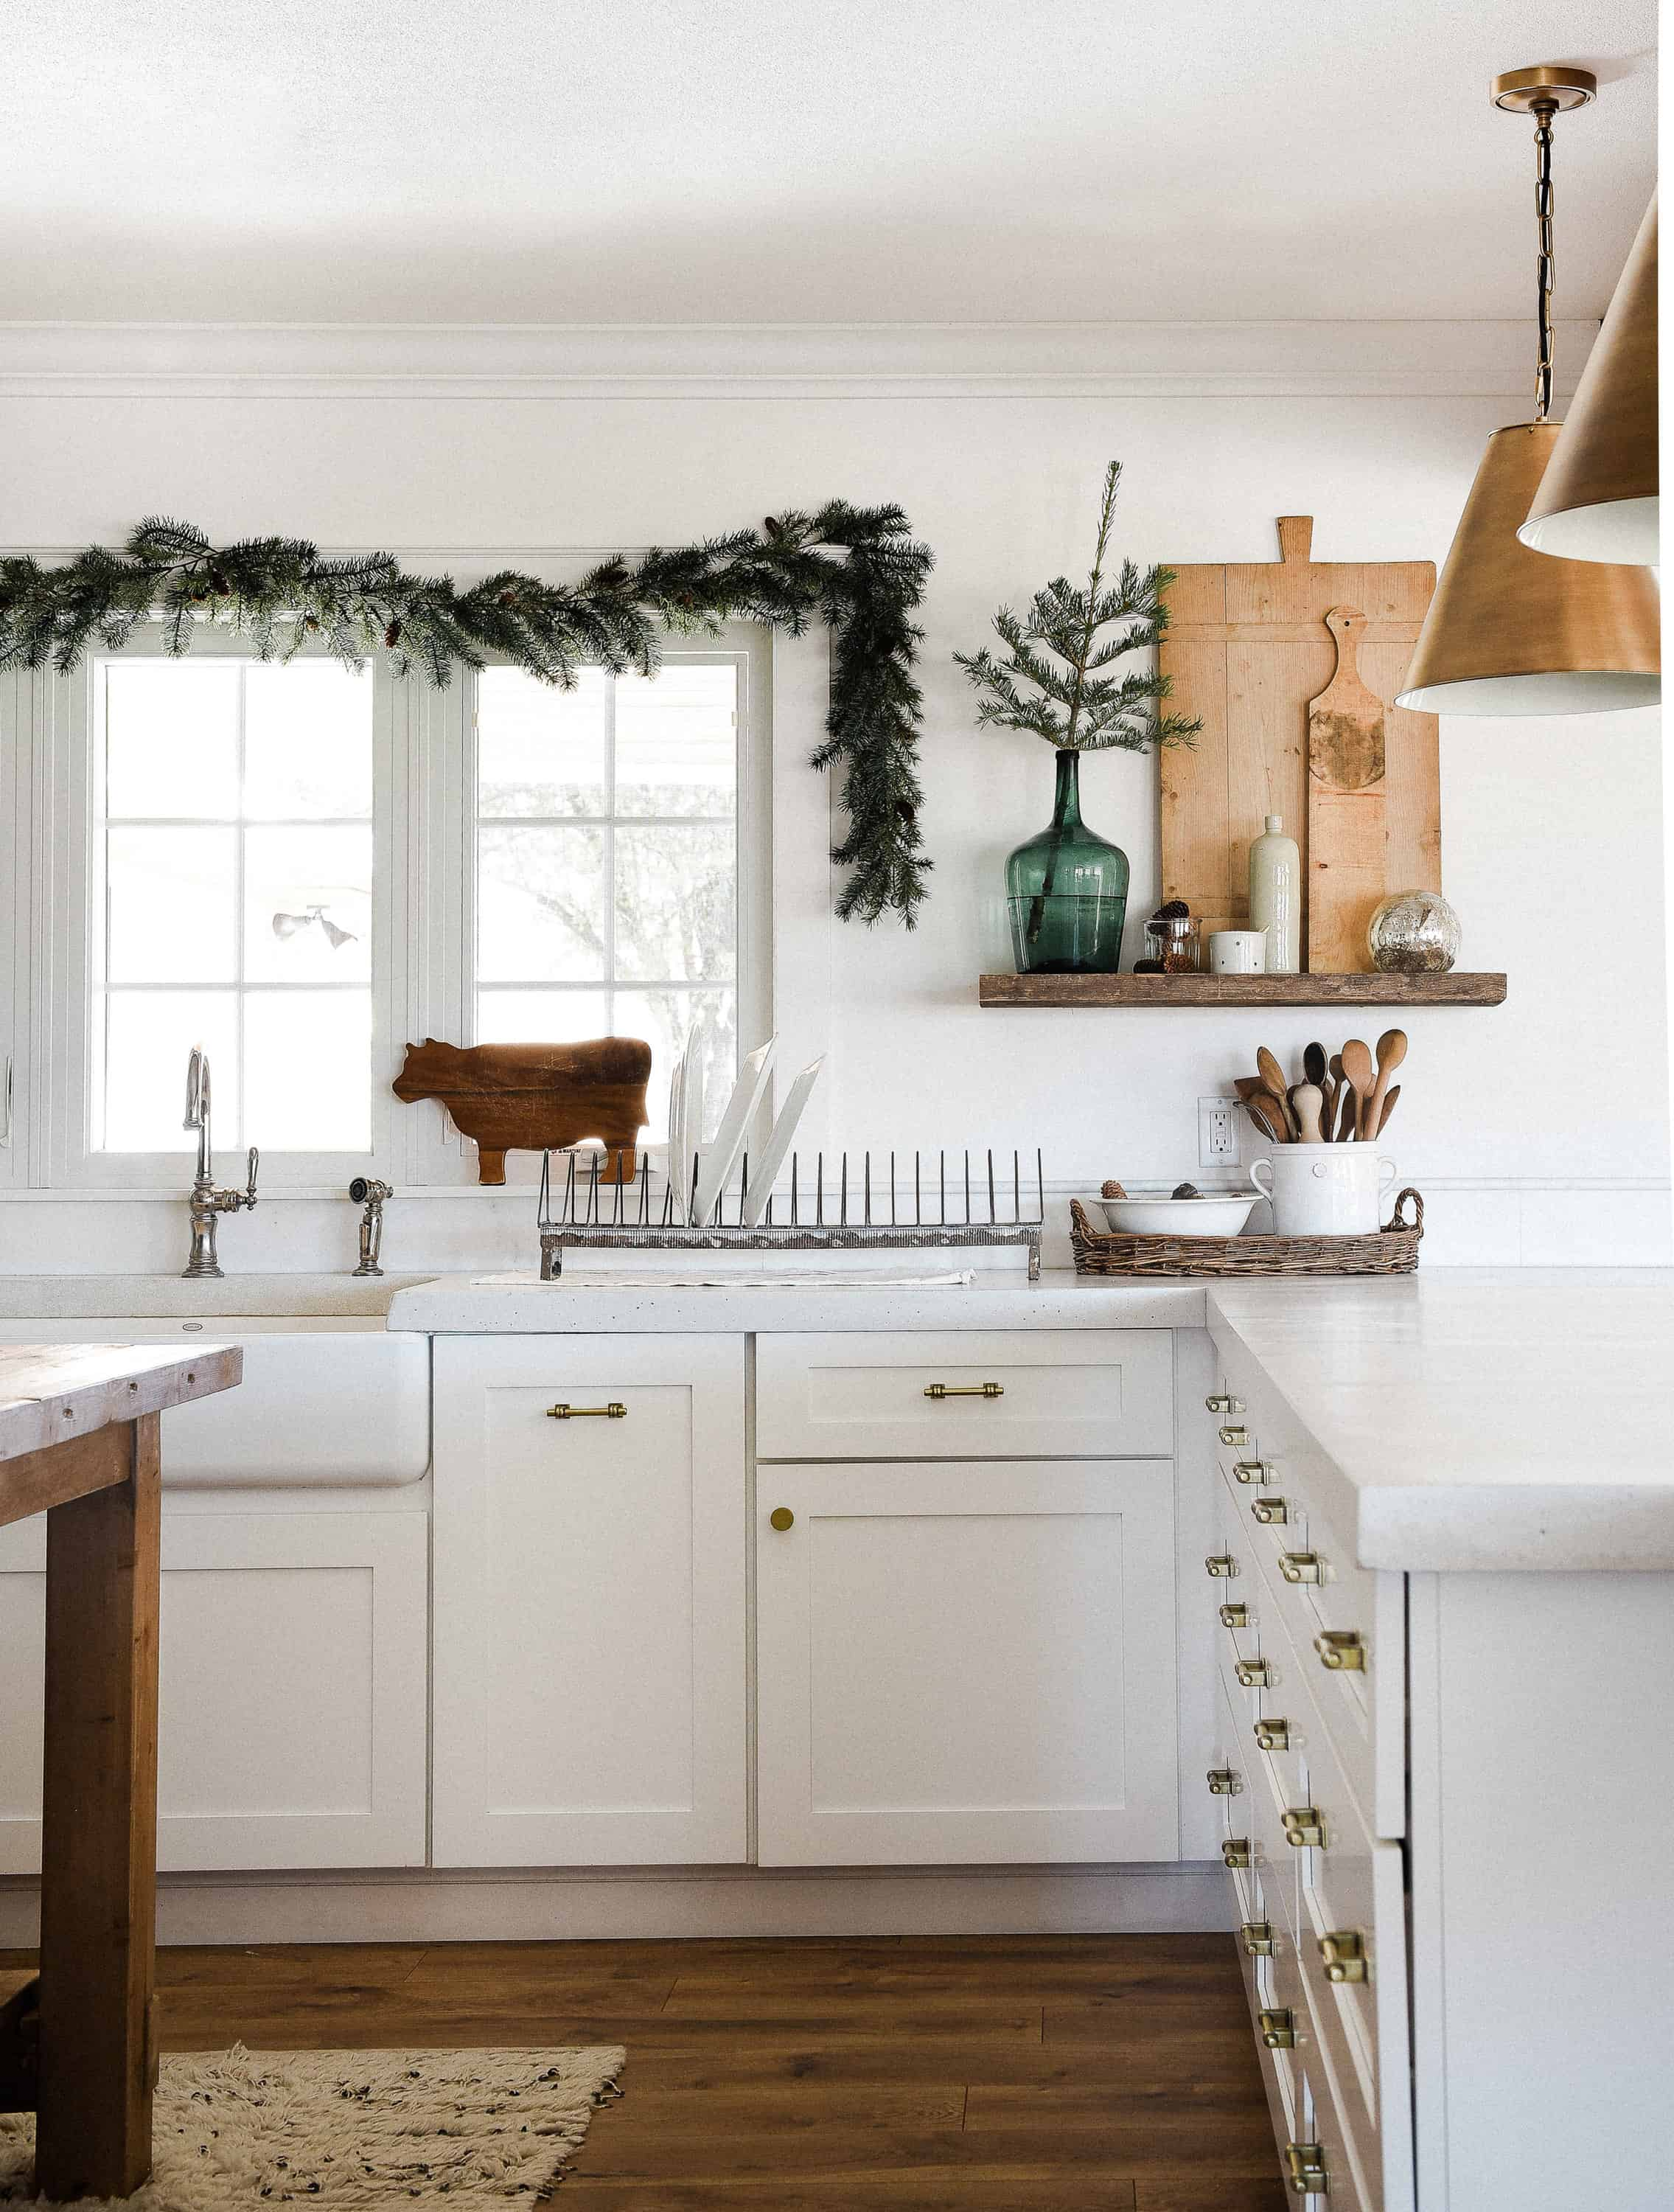 Tour our Christmas kitchen to gather ideas for decorating for the holidays this year! Use greenery and vintage touches to keep things simple and cohesive!